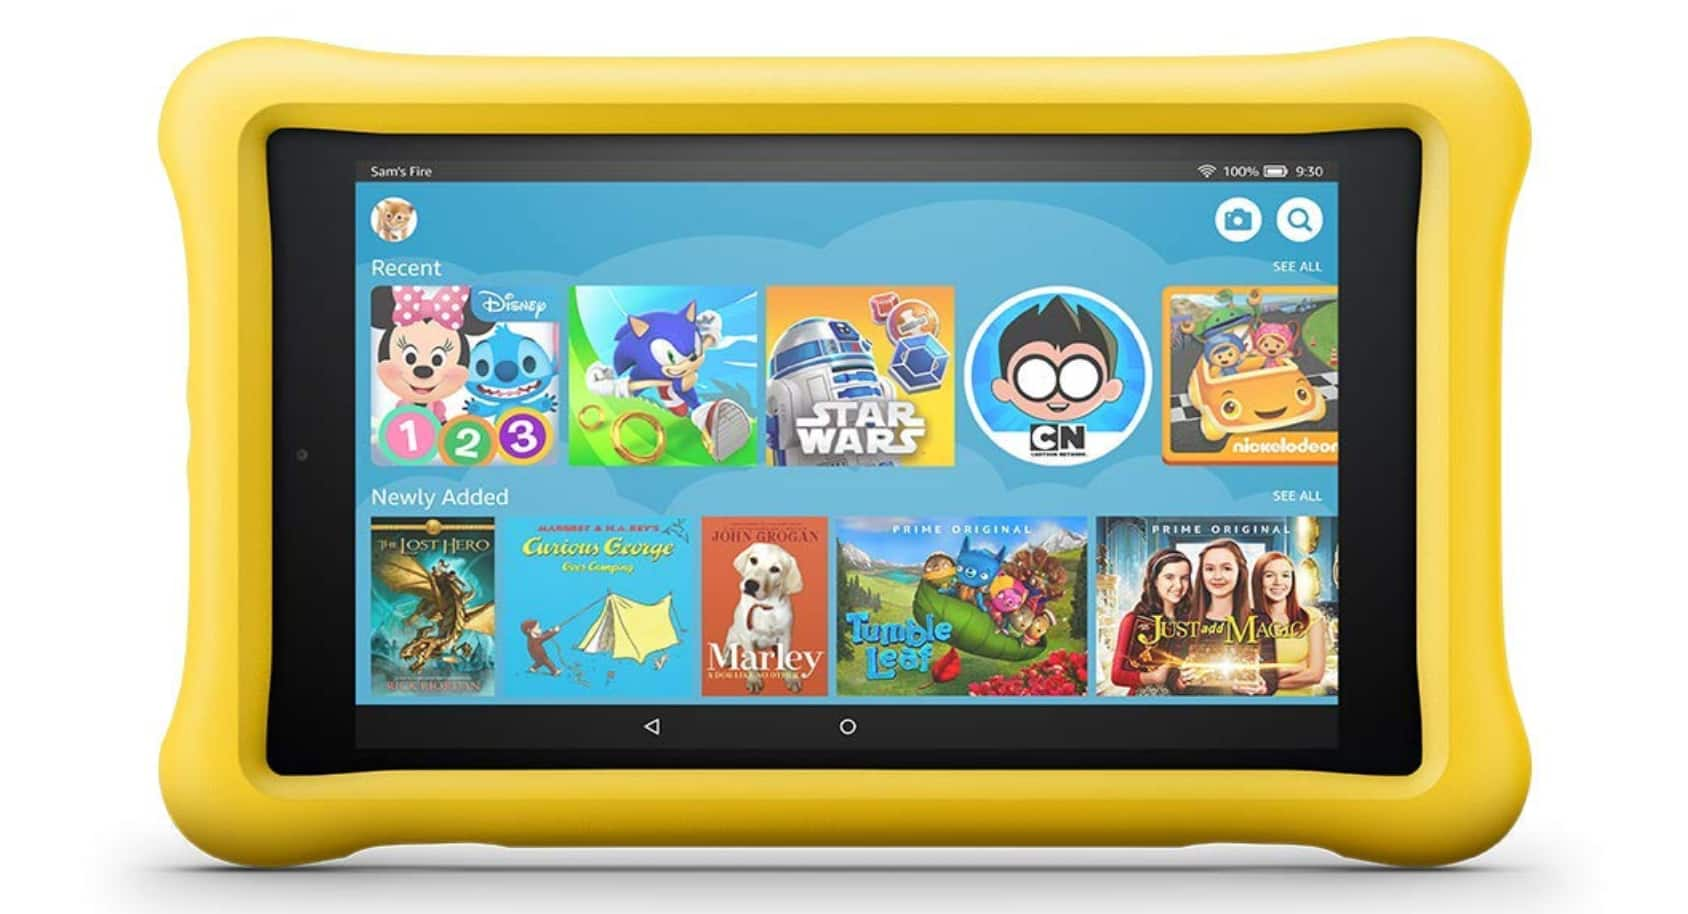 Amazon Black Friday 2018: Fire HD 8 Kids Edition Tablet